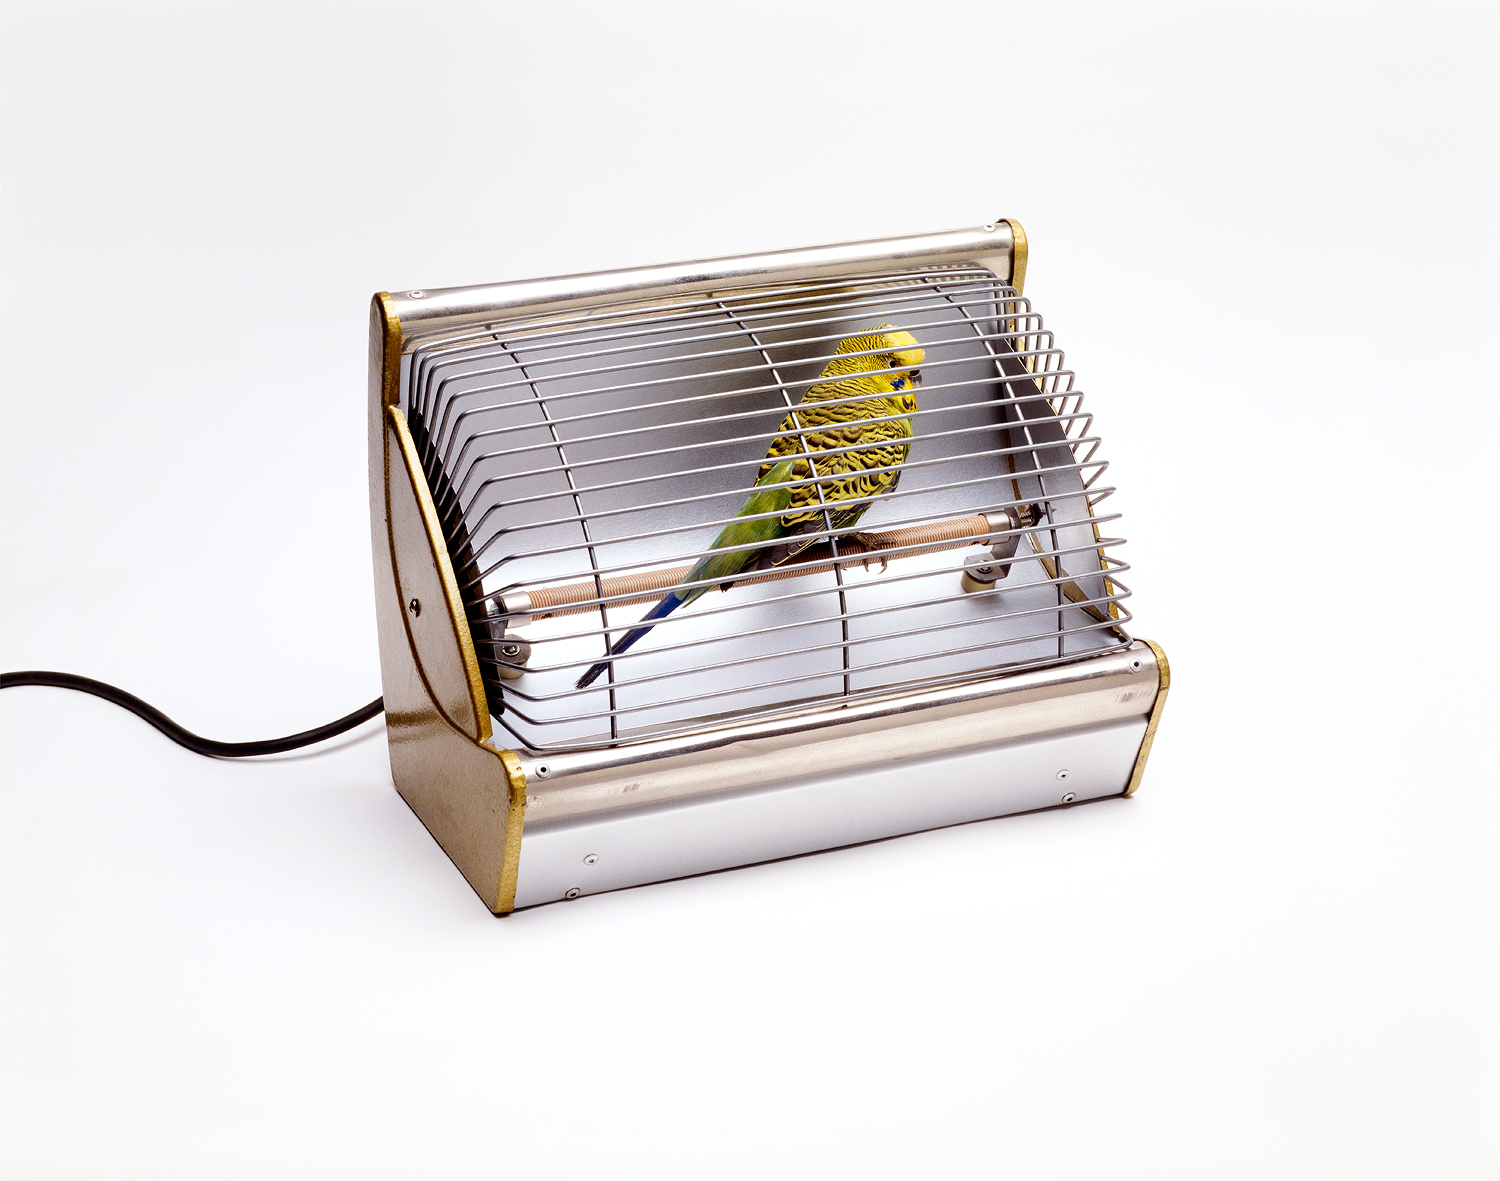 Budgie in Heater